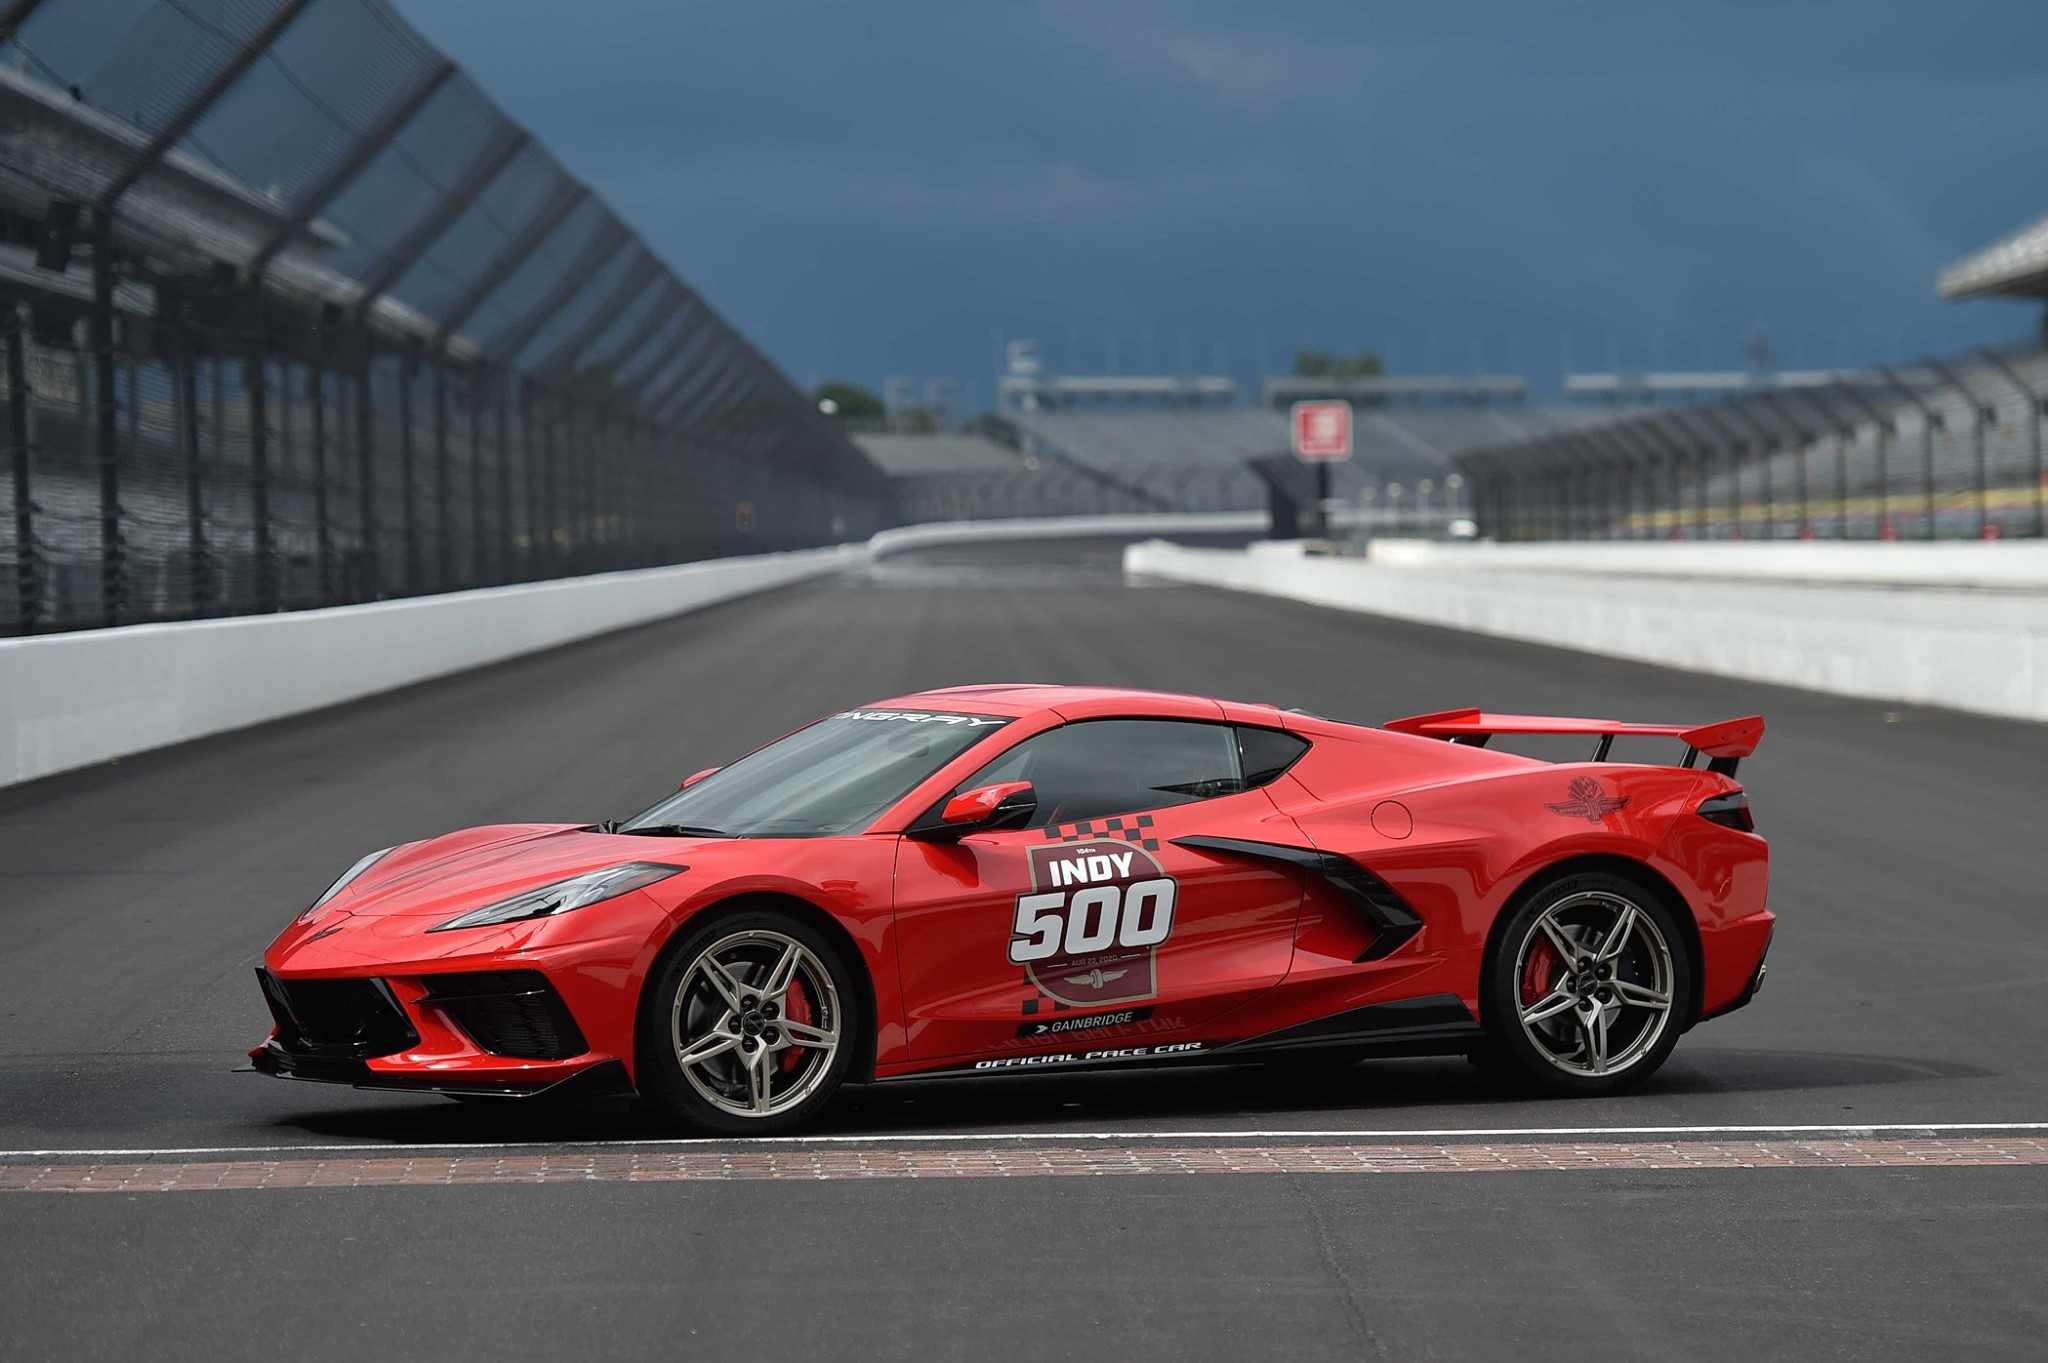 2020-Corvette-Pace-Car-Indy-500-1